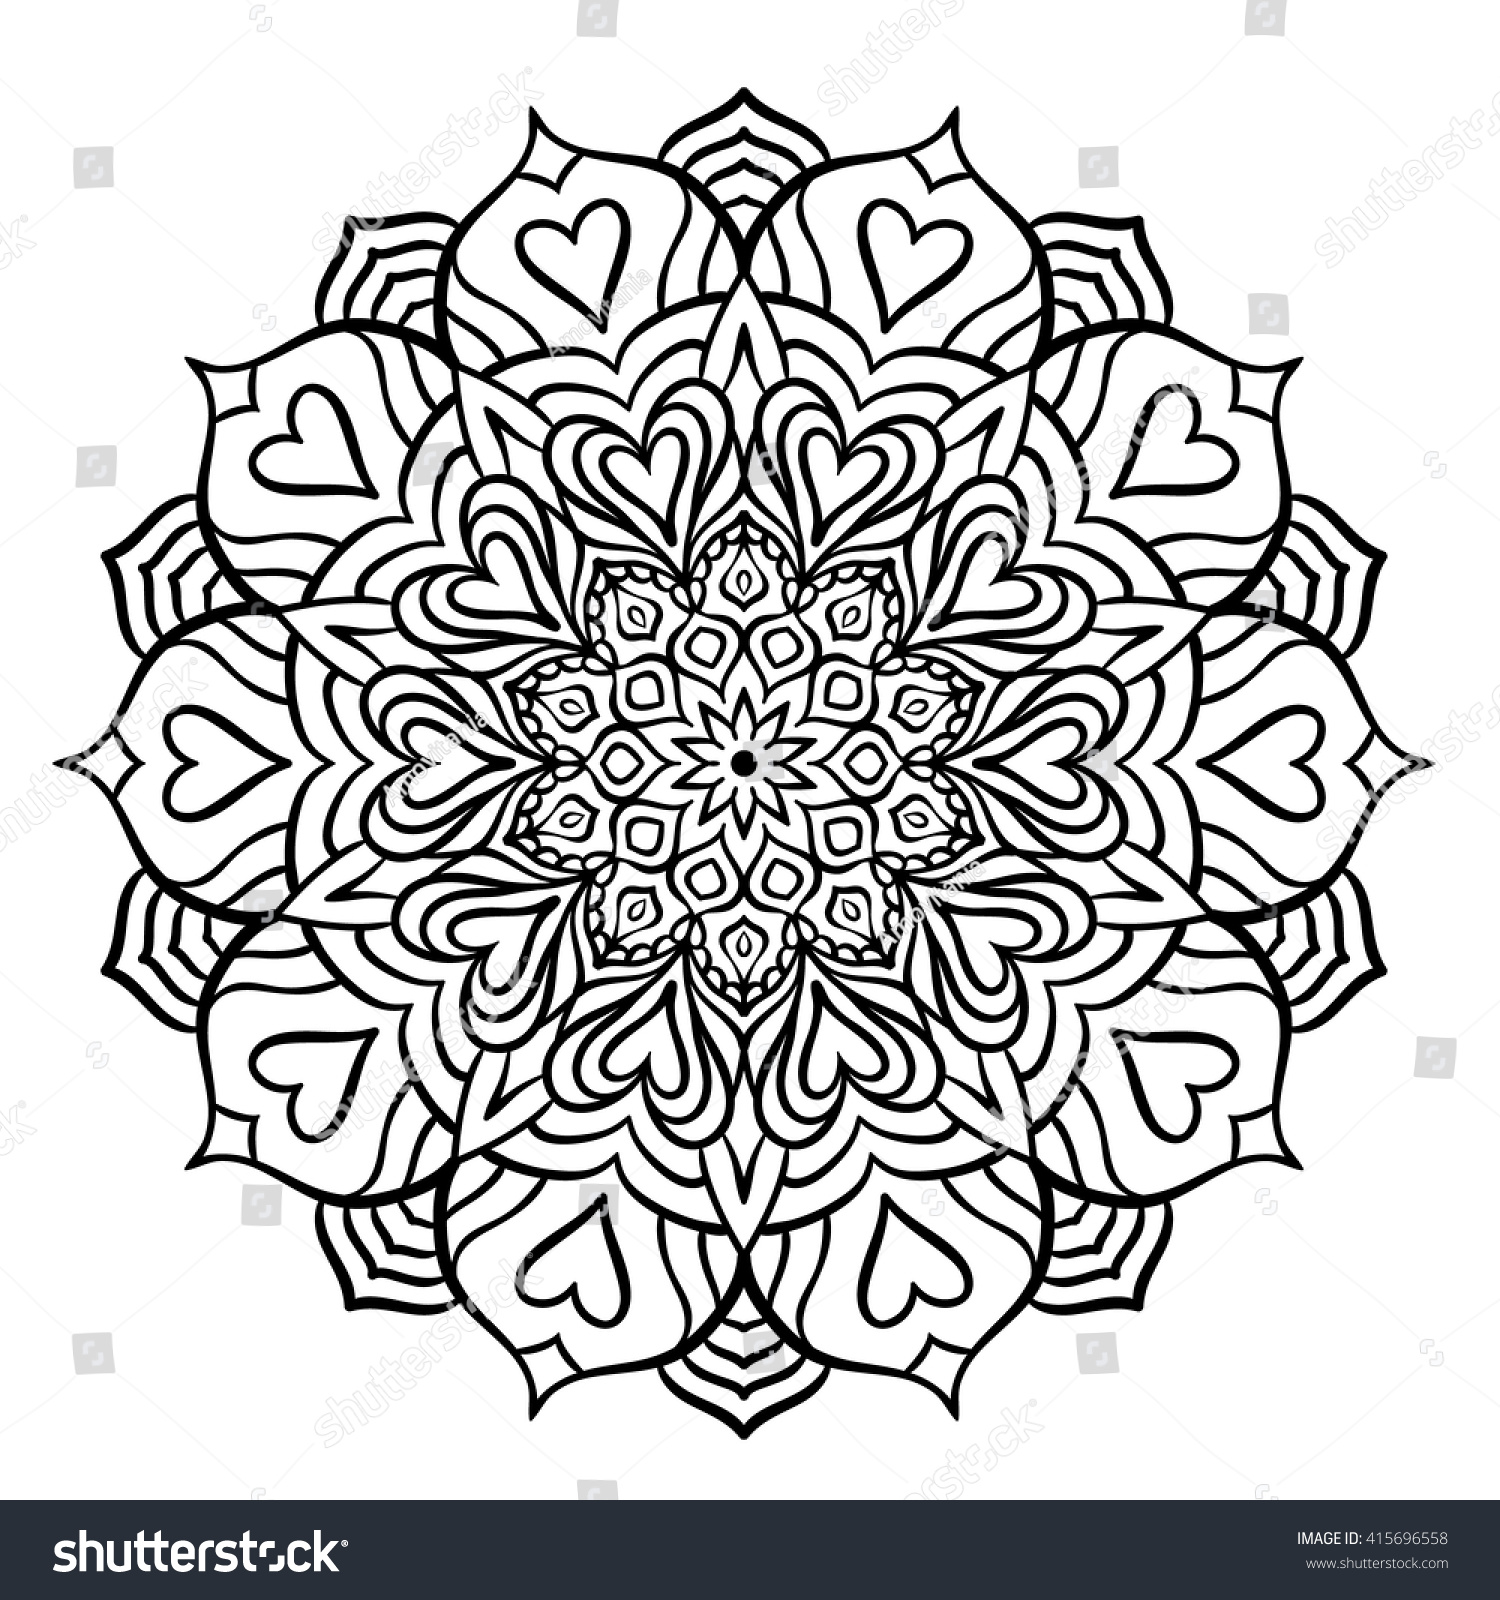 Outline Mandala For Coloring Book Decorative Round Ornament Anti Stress Therapy Pattern Weave